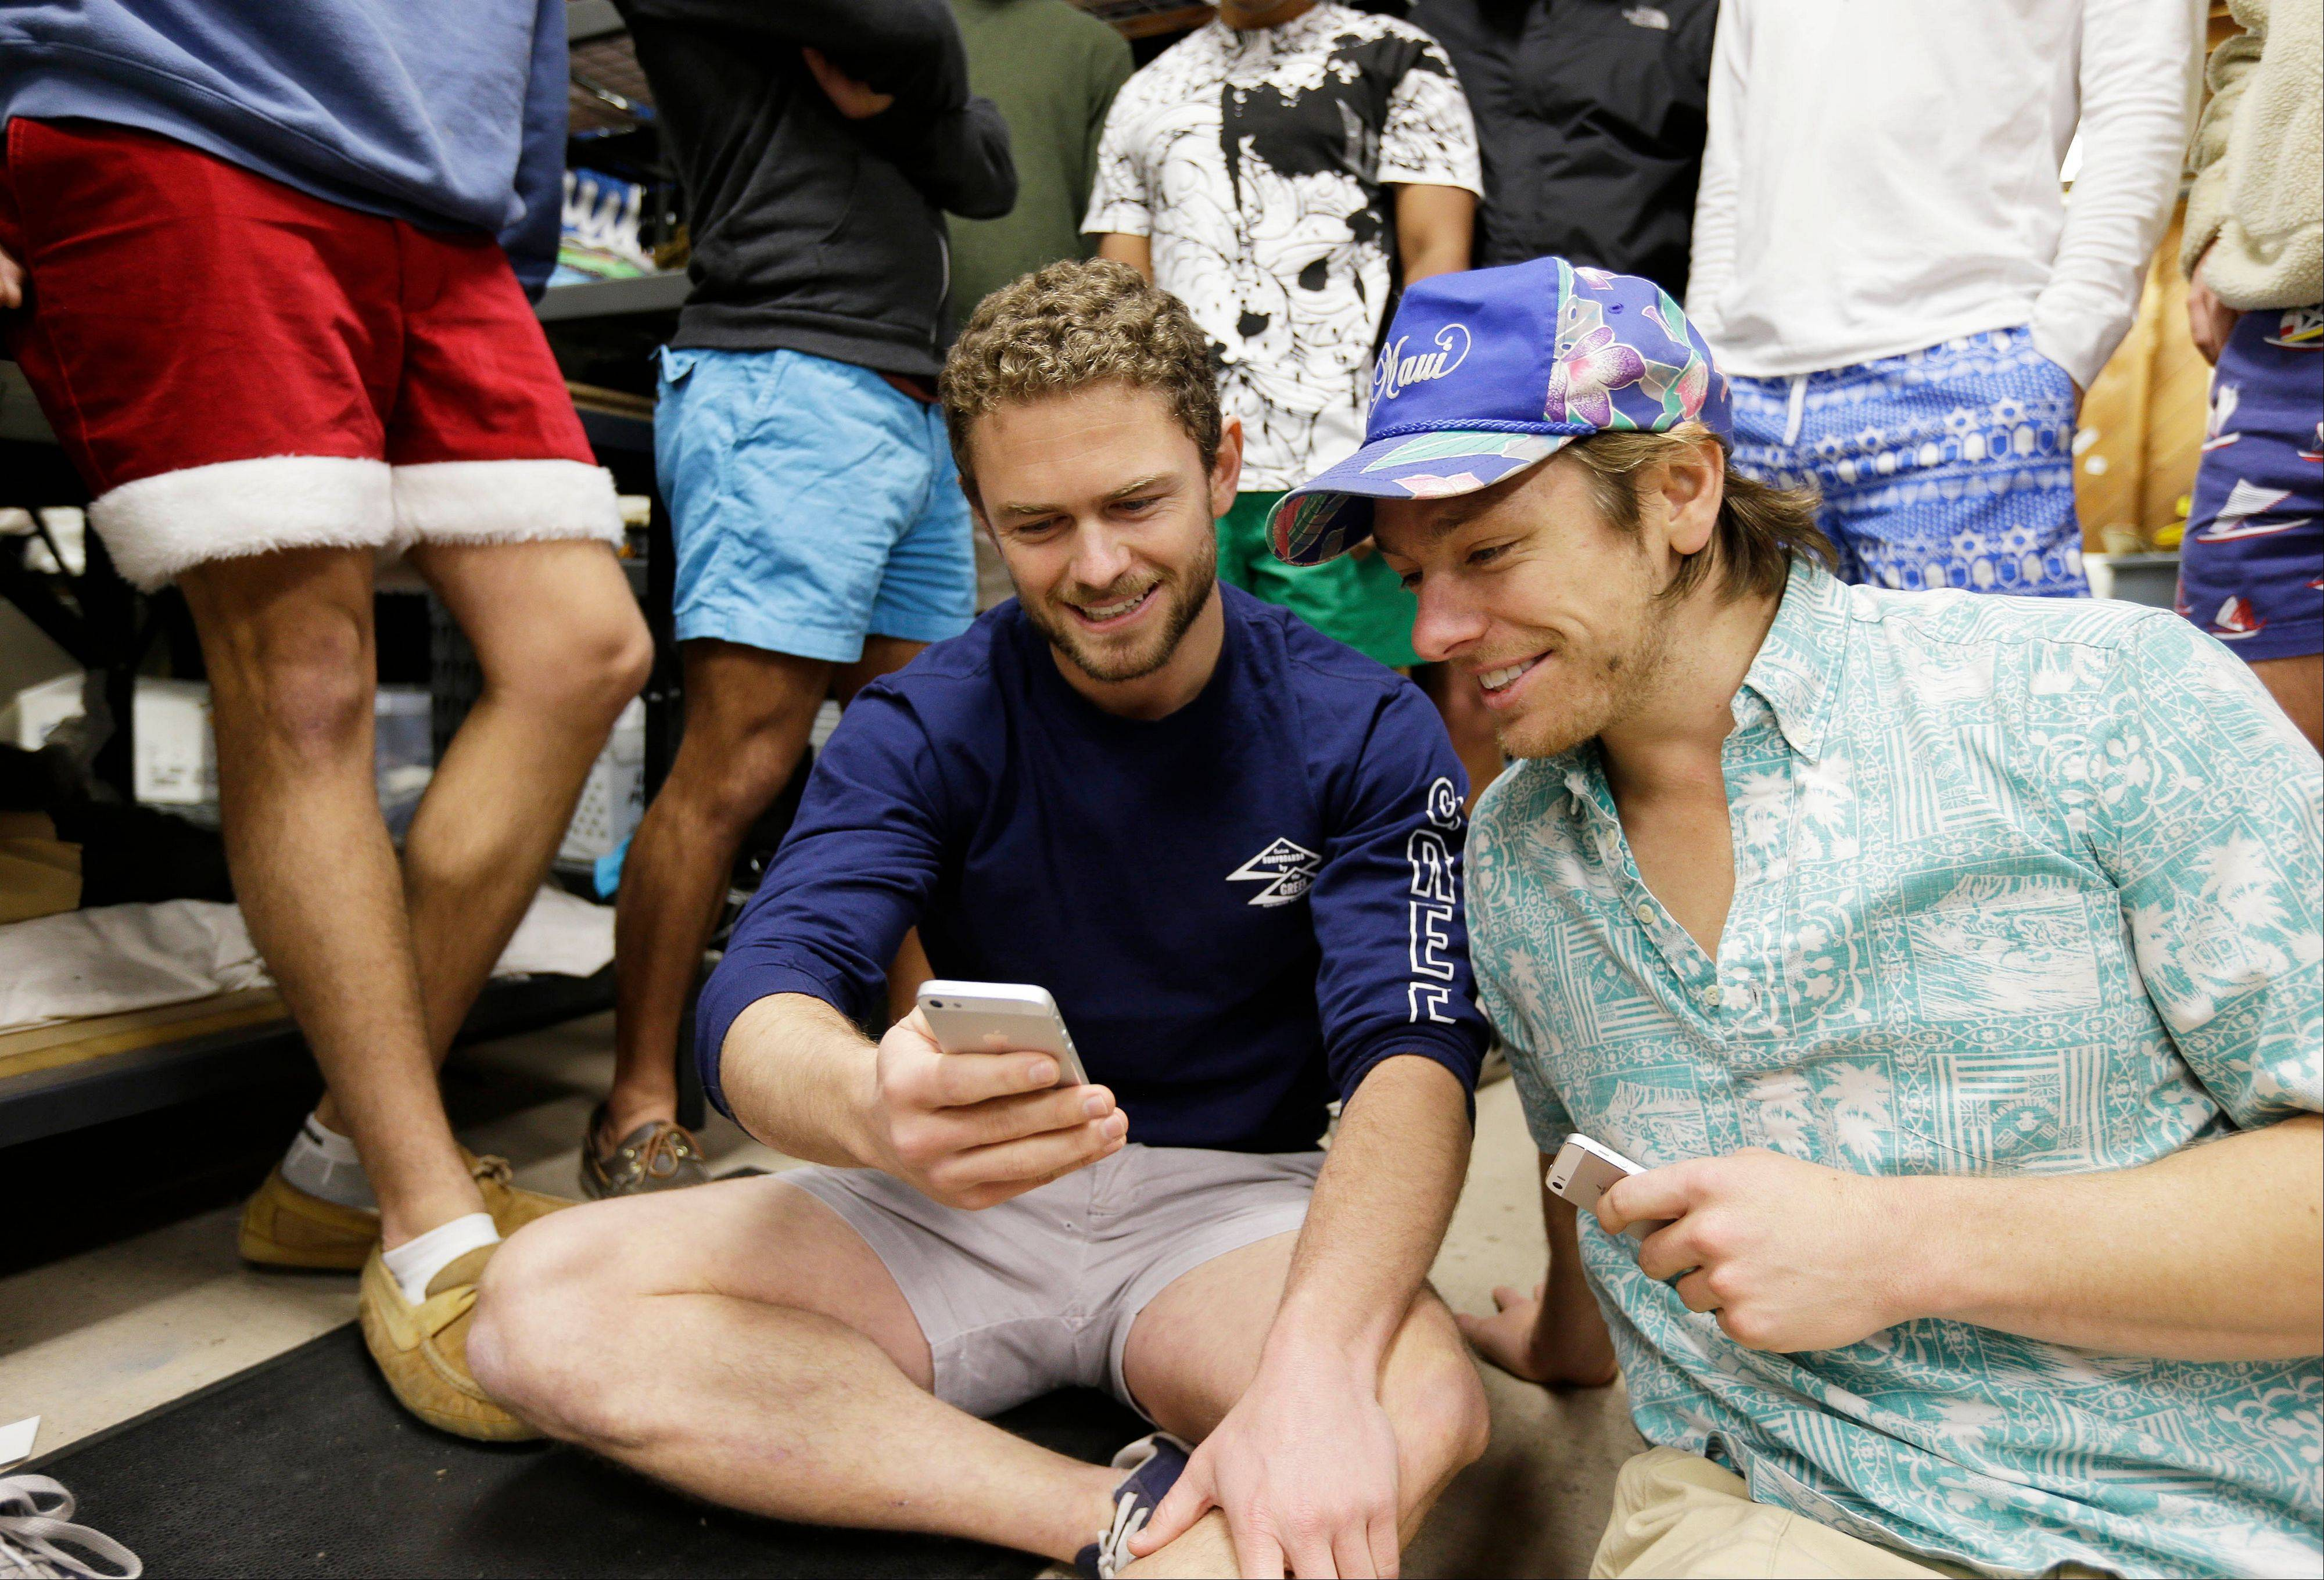 Co-founders Tom Montgomery, left, and Preston Rutherford, right, review Instagram performances while surrounded by co-workers at the headquarters of Chubbies Shorts in San Francisco. Chubbies uses Facebook for marketing tools like videos that users will share with their friends. It uses Twitter for conversations with customers, and posts photos on Instagram to create buzz about their products.